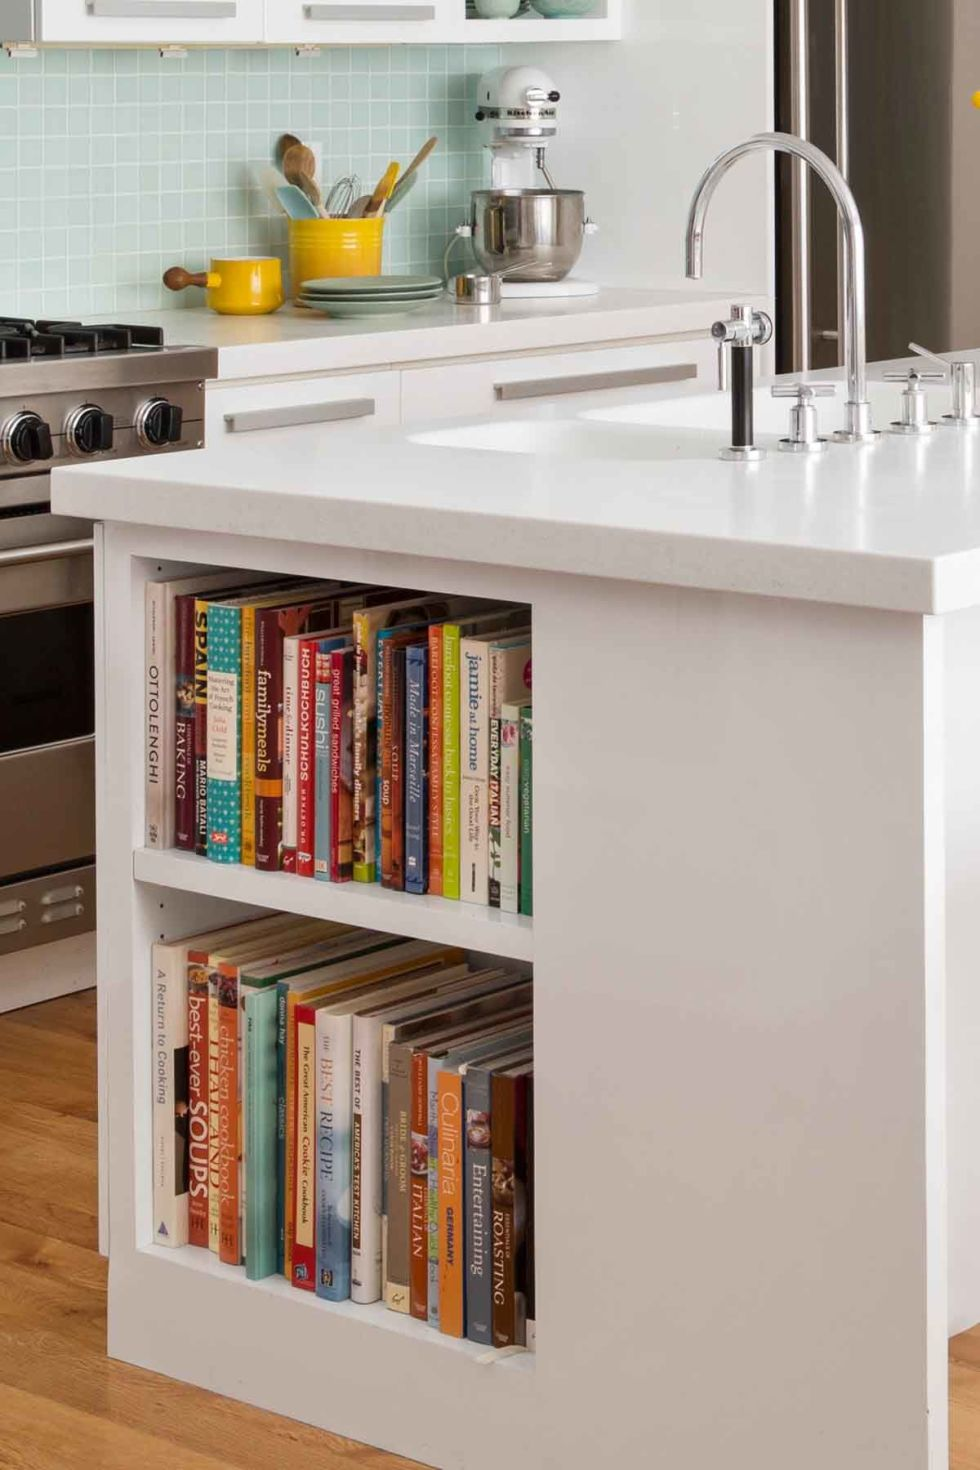 20 Kitchen Organization And Storage Ideas   How To Organize Your Kitchen